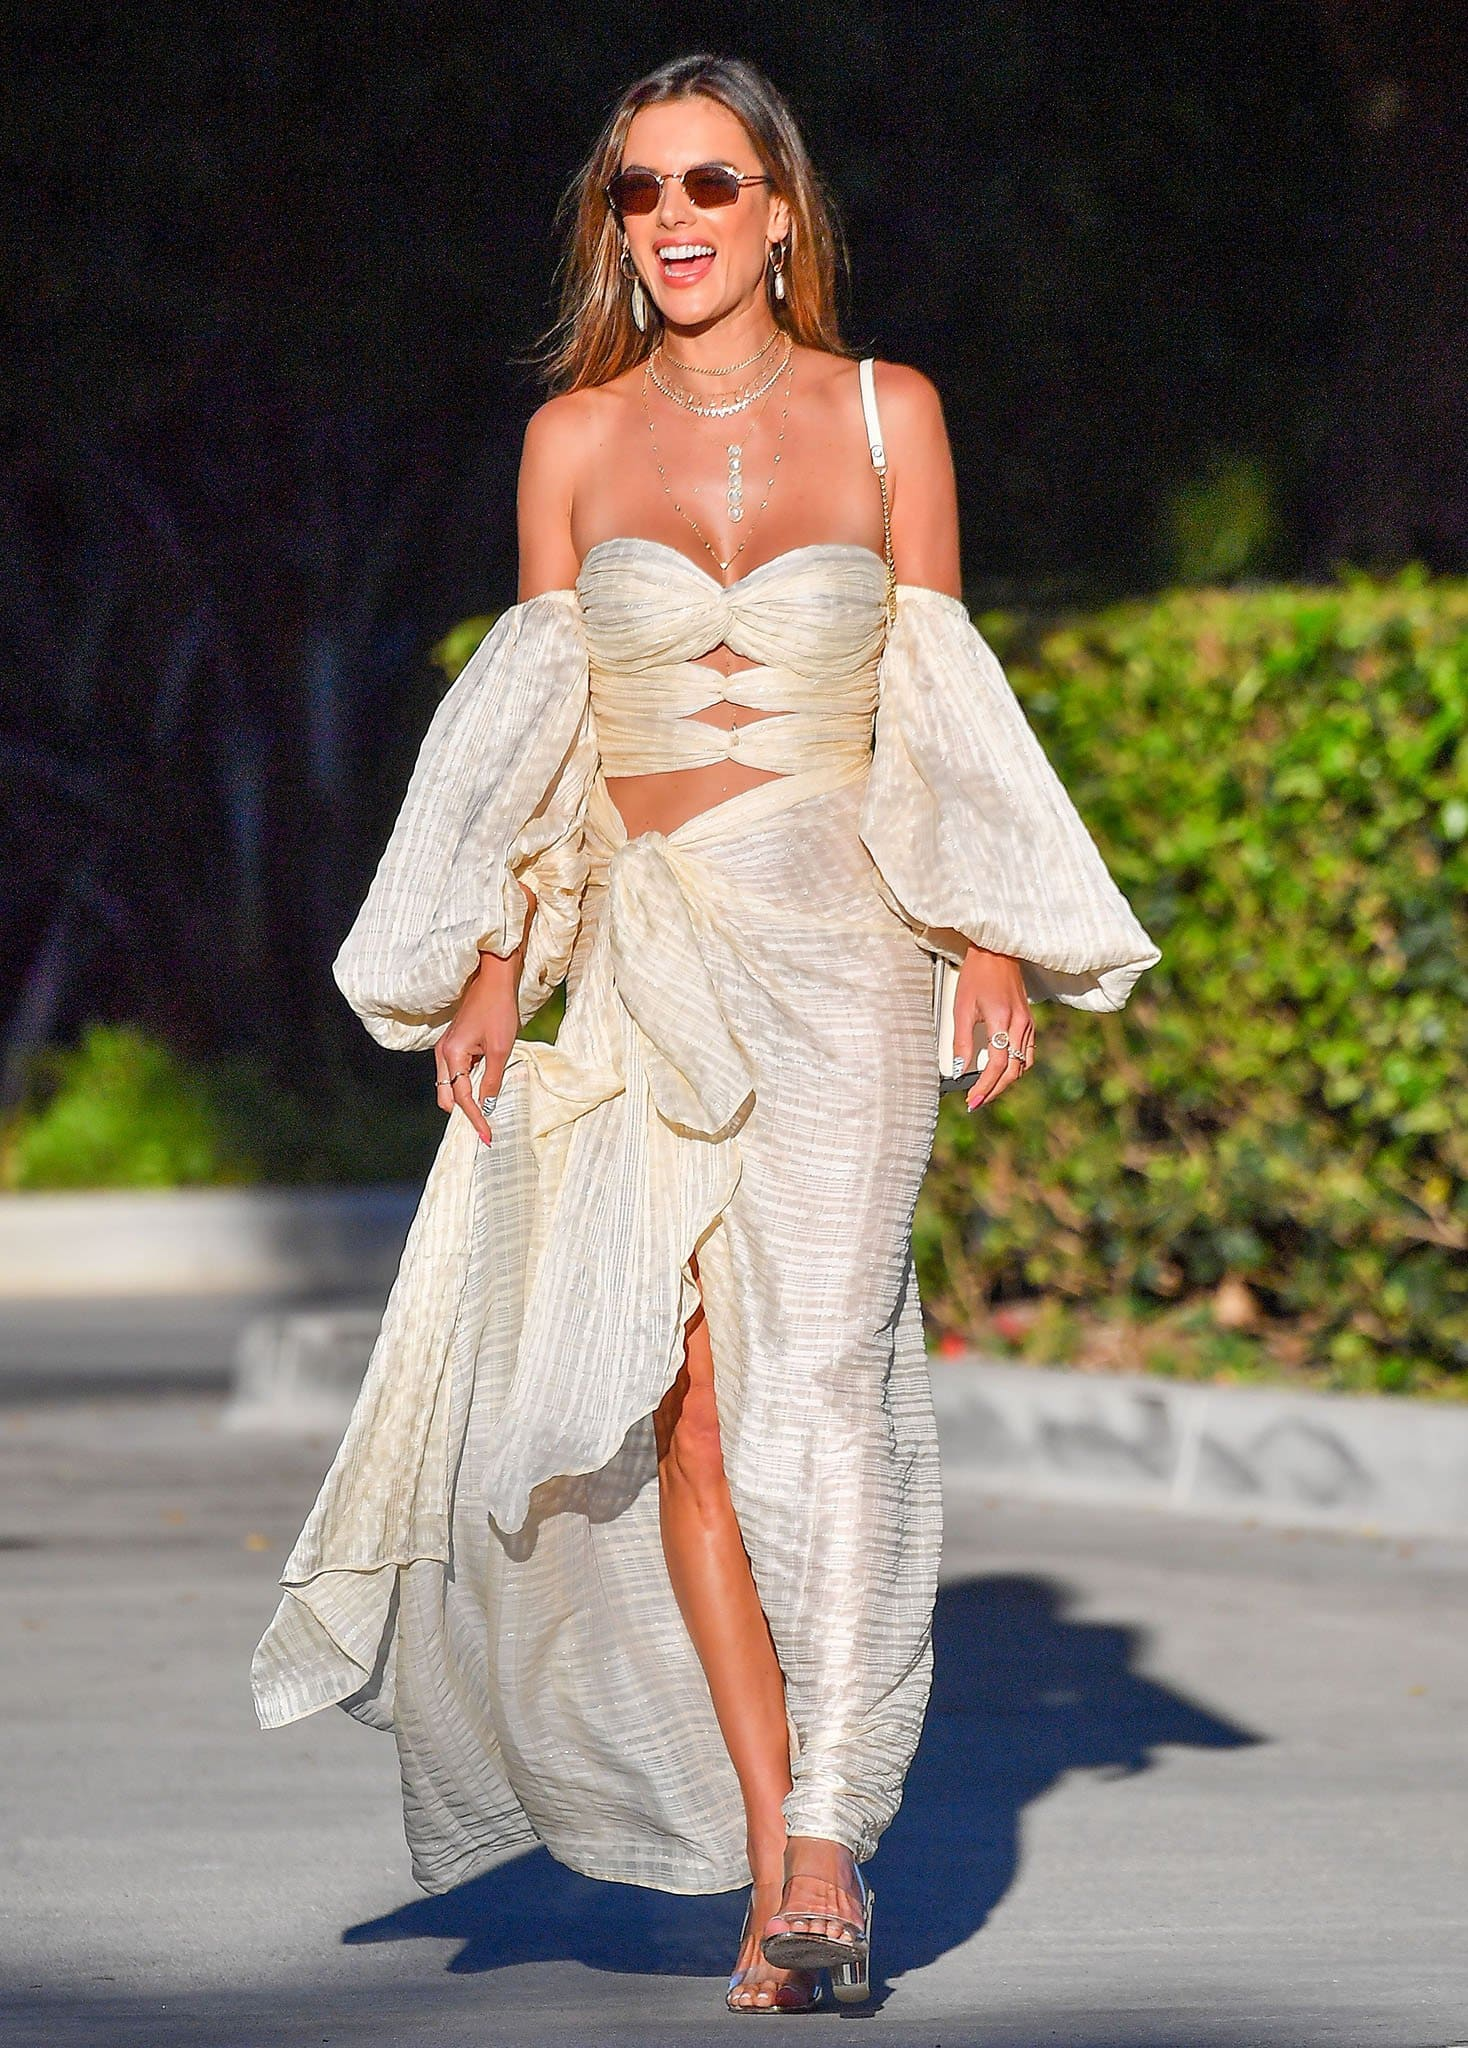 Alessandra Ambrosio shows some flesh in Bronx and Banco semi-sheer gauze crop top and matching maxi skirt